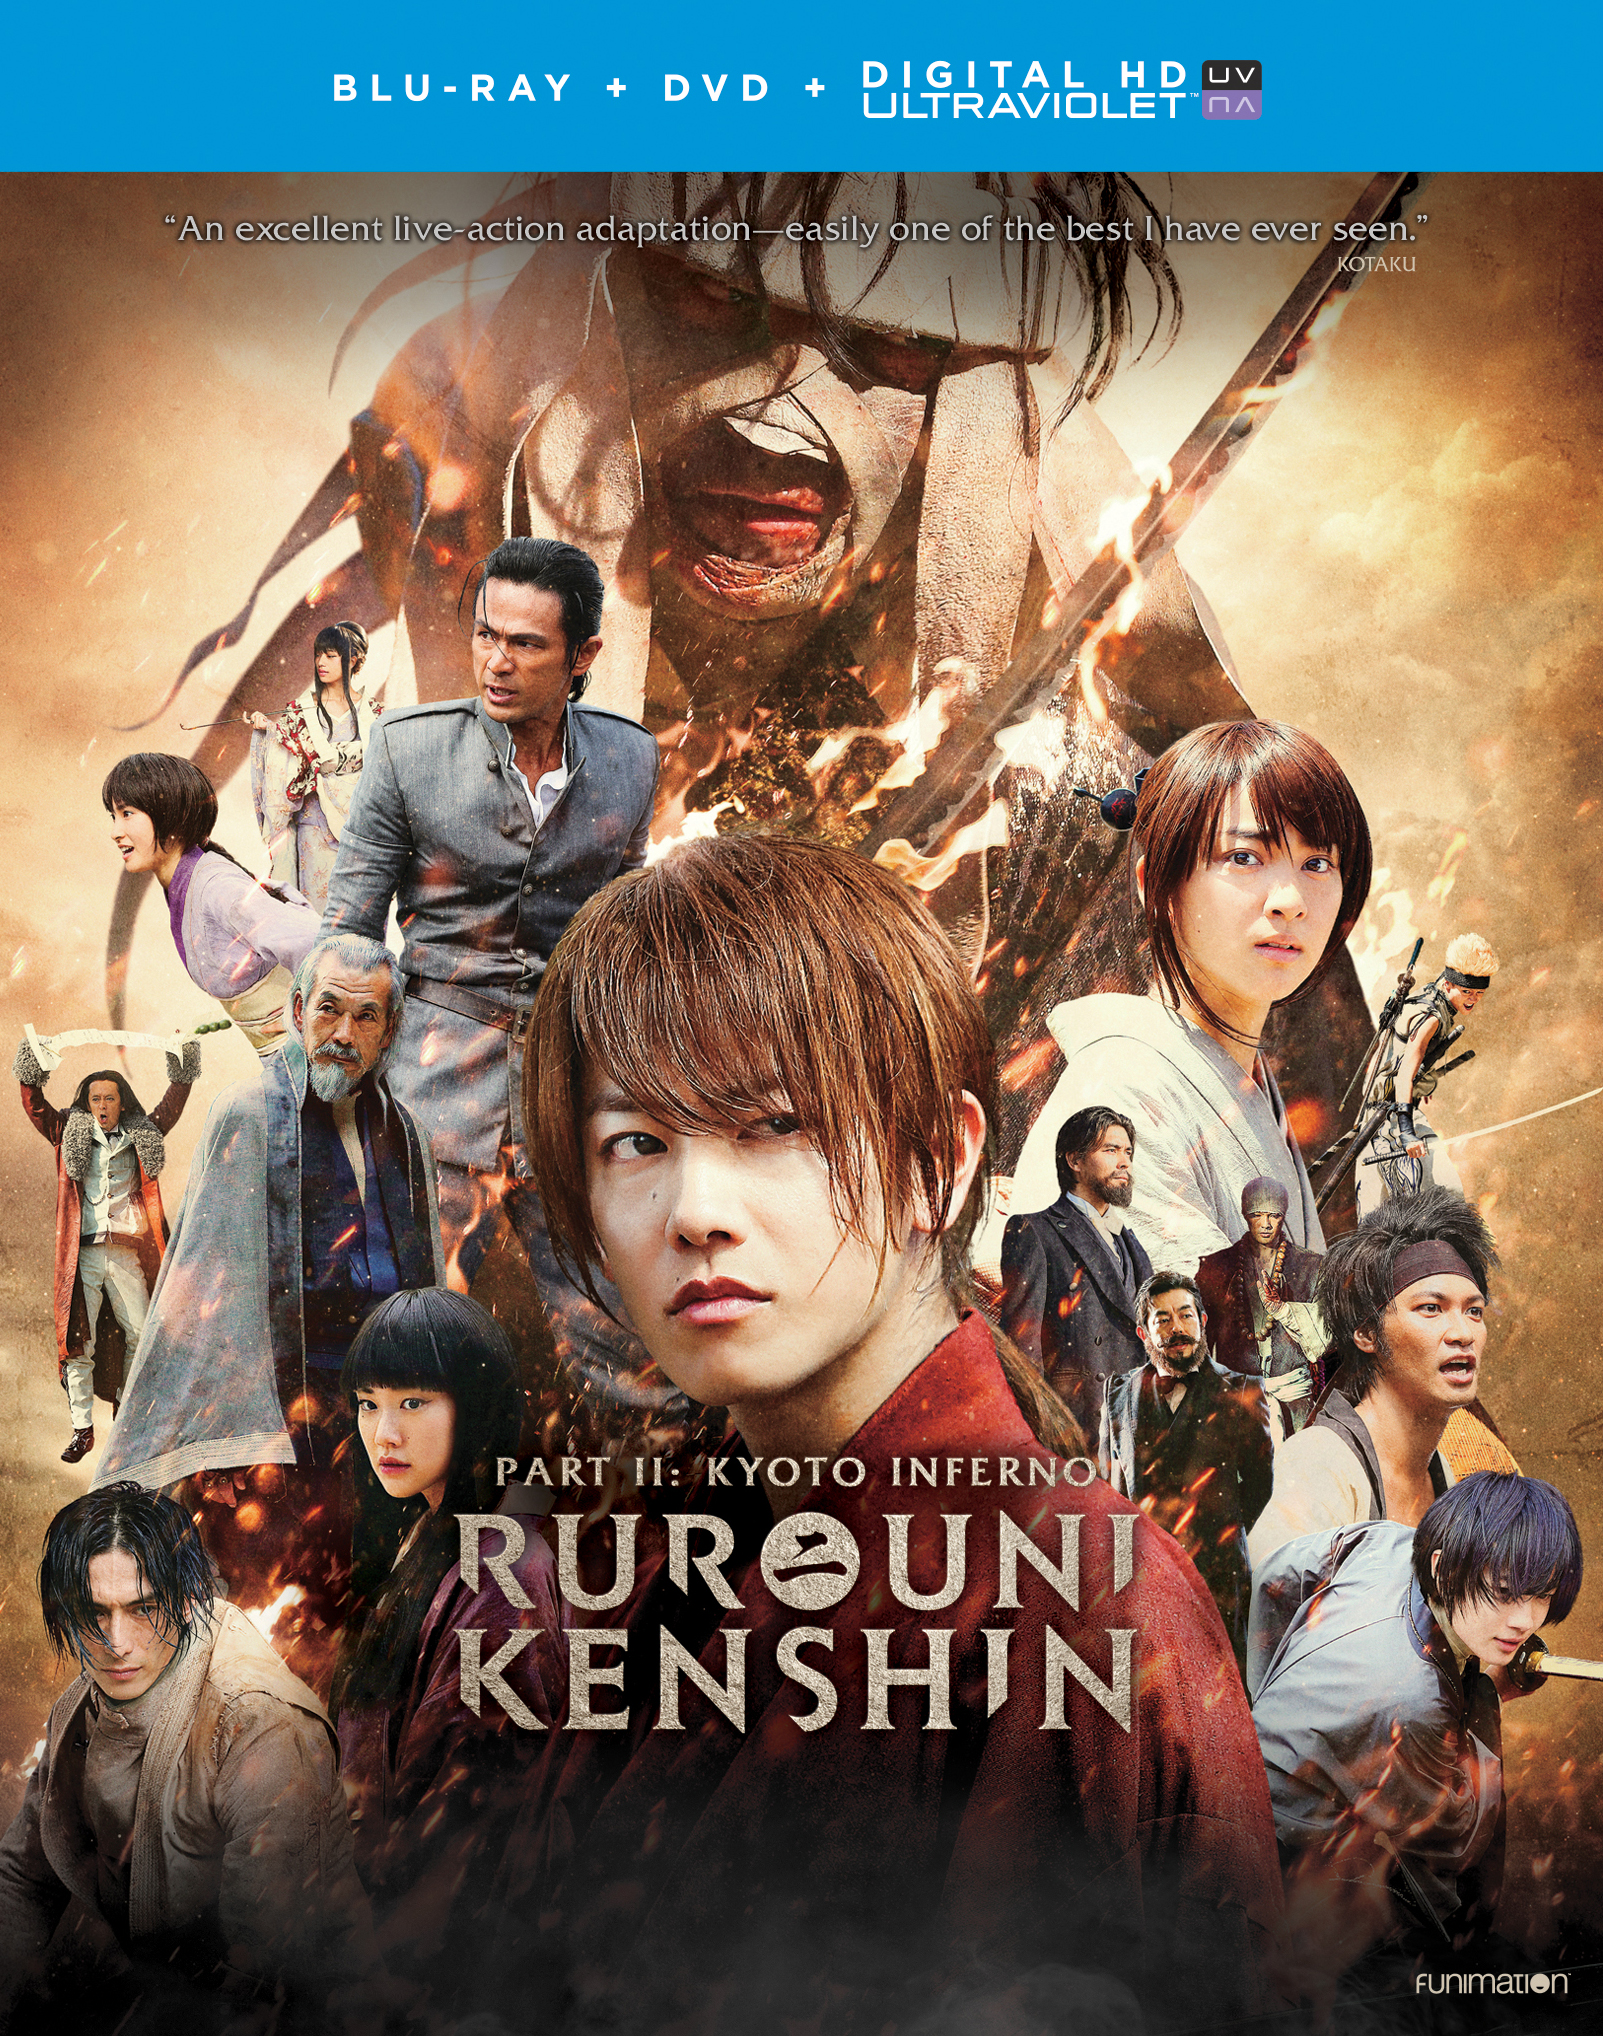 Rurouni Kenshin Part II Kyoto Inferno Blu-ray/DVD + UV 704400018329